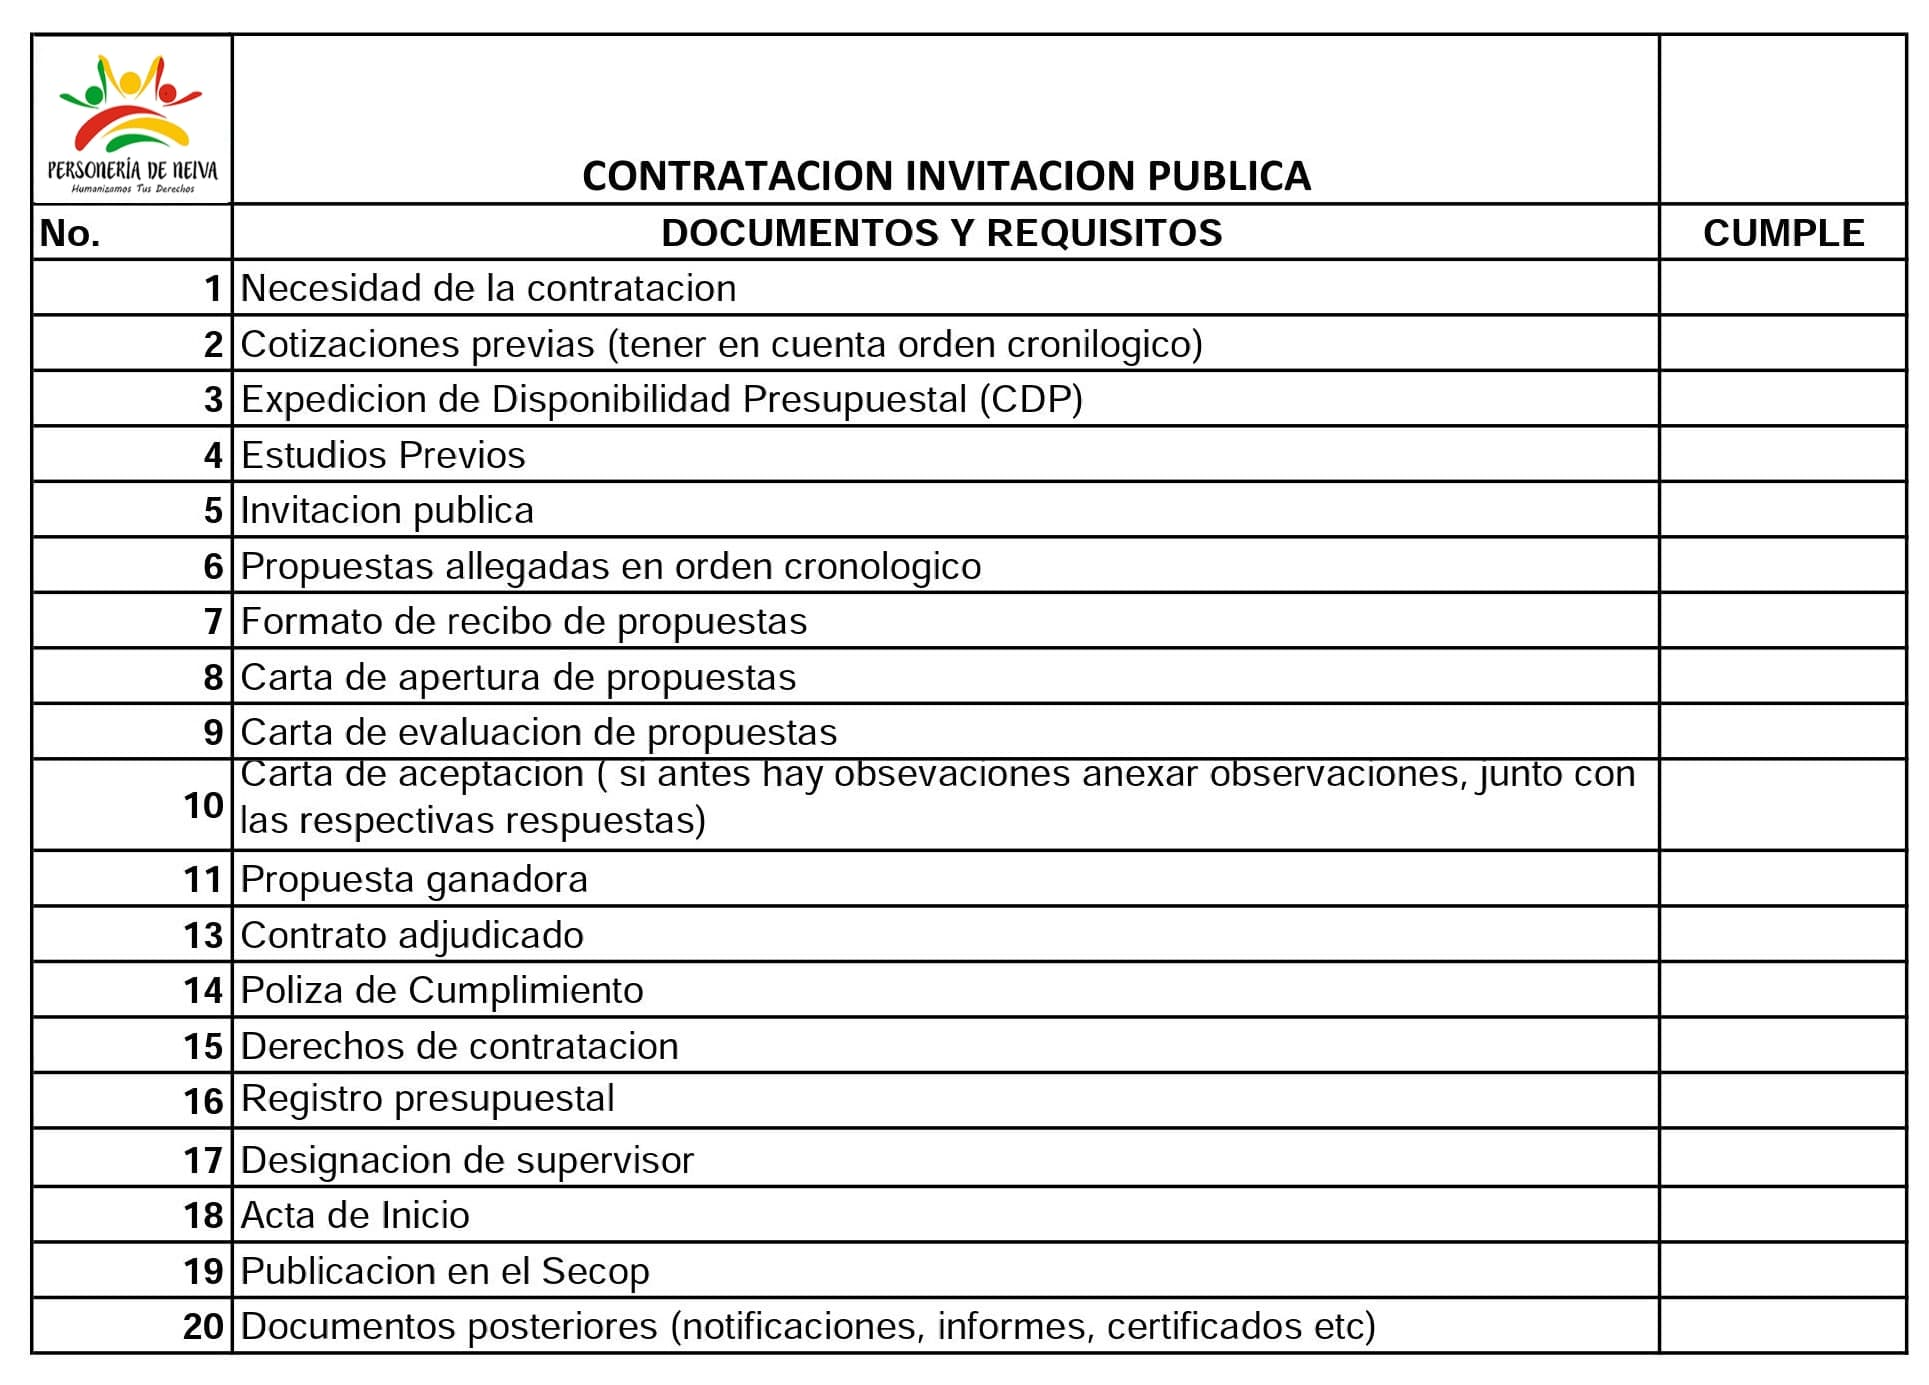 Requisitos de contratacion invitacion publica